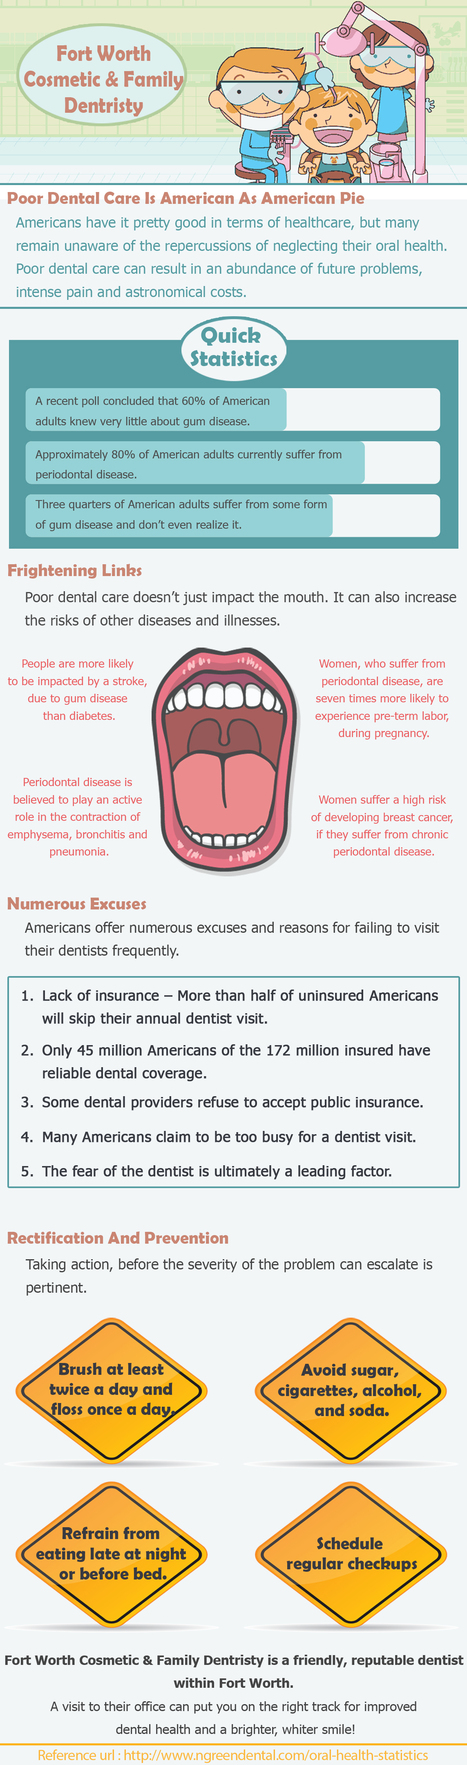 Fort worth Cosmetic & Family Dentistry | It is key to Happy life | Scoop.it